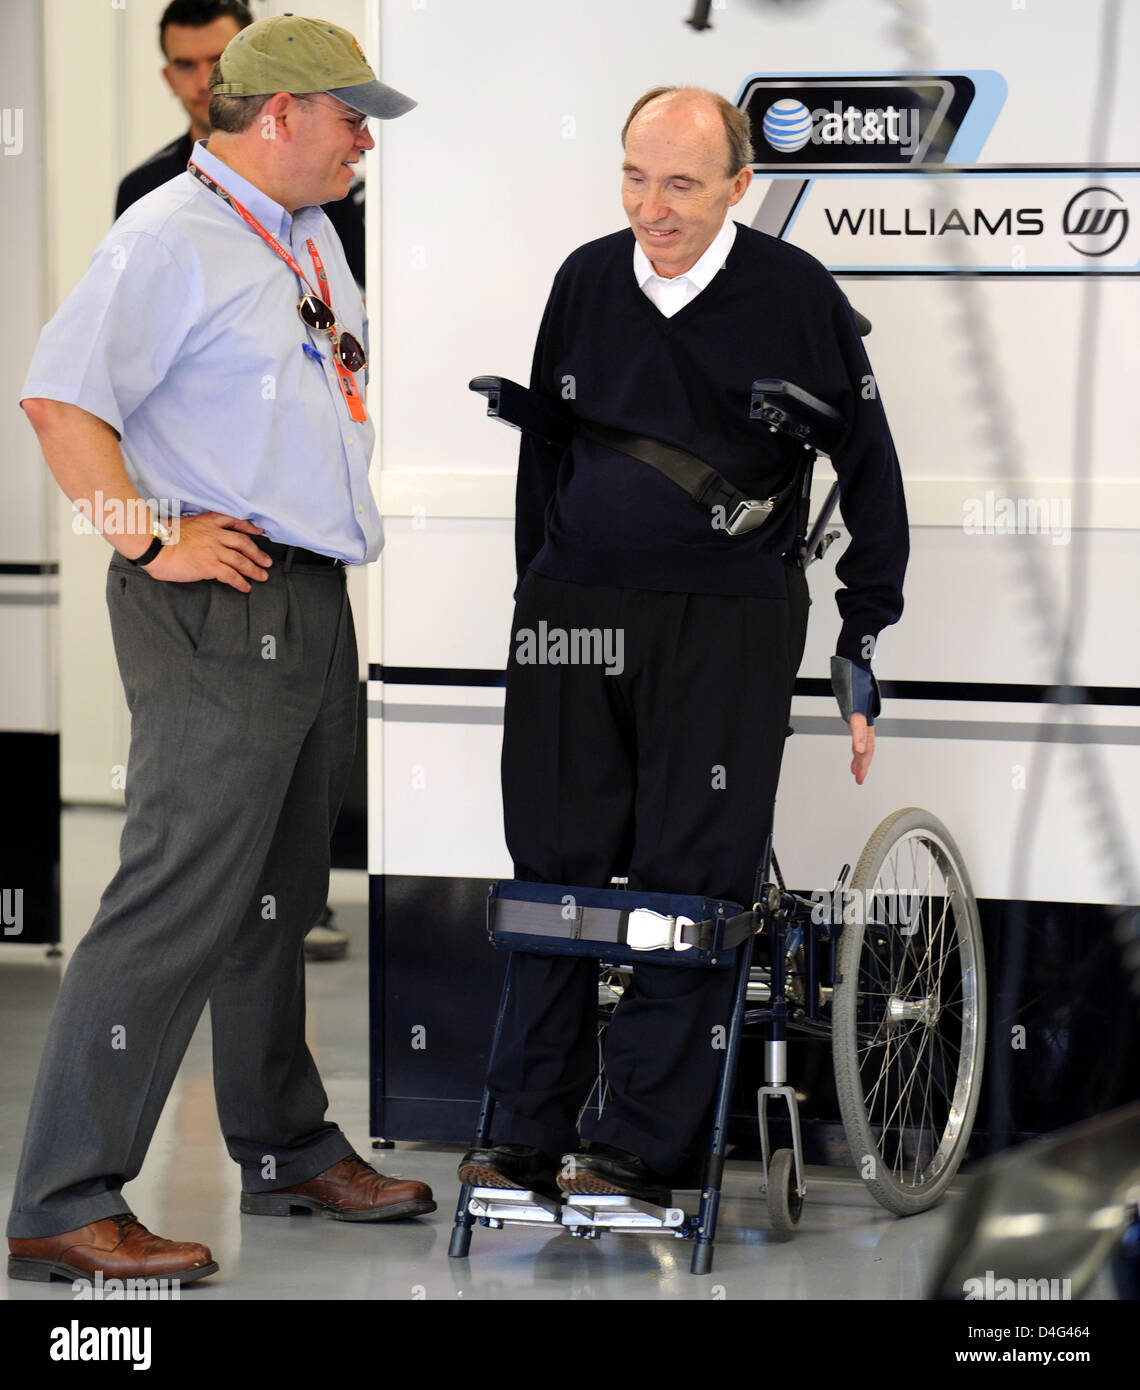 Williams  Car F